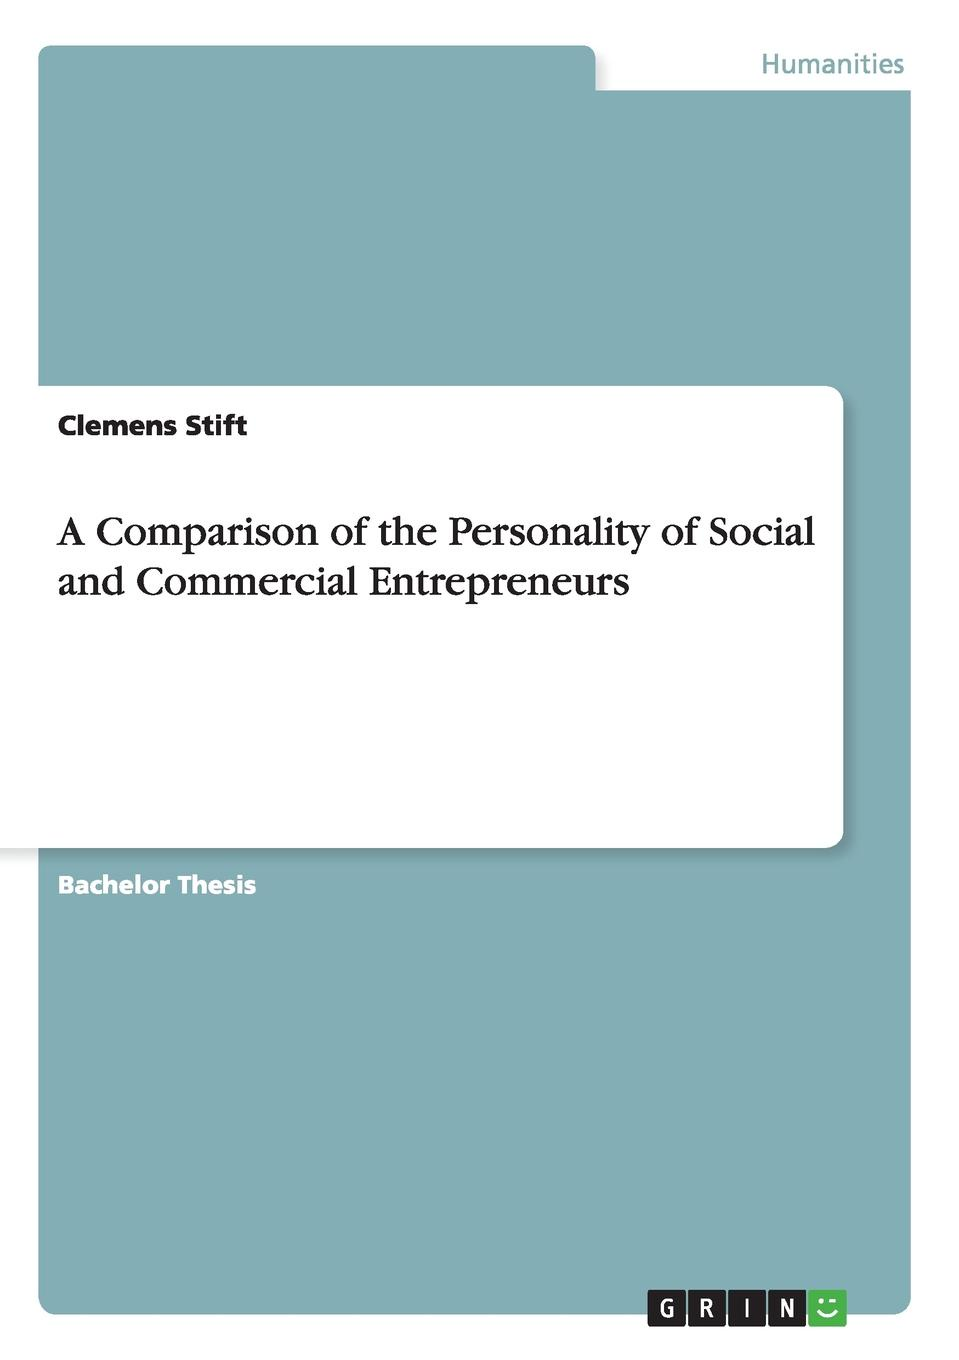 Clemens Stift A Comparison of the Personality of Social and Commercial Entrepreneurs do foreign dollars discourage entrepreneurship